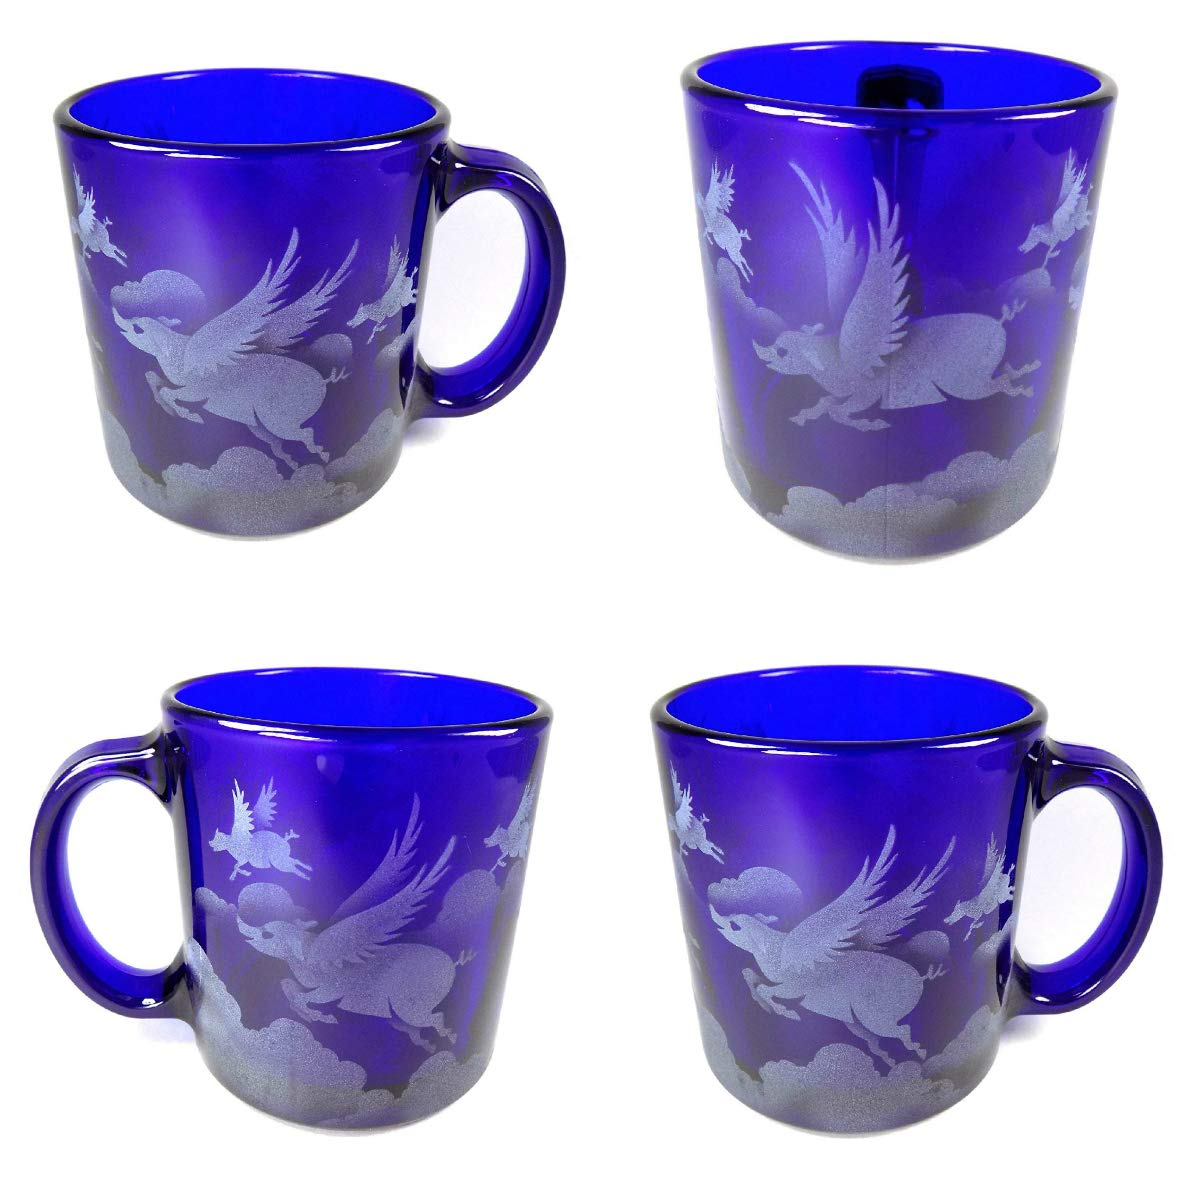 IncisoArt Hand Etched Coffee Mug Sandblasted (Sand Carved) Glass Handmade Engraved Pigs Flying Over Clouds (4, Cobalt Blue Pigs Flying Over Clouds)